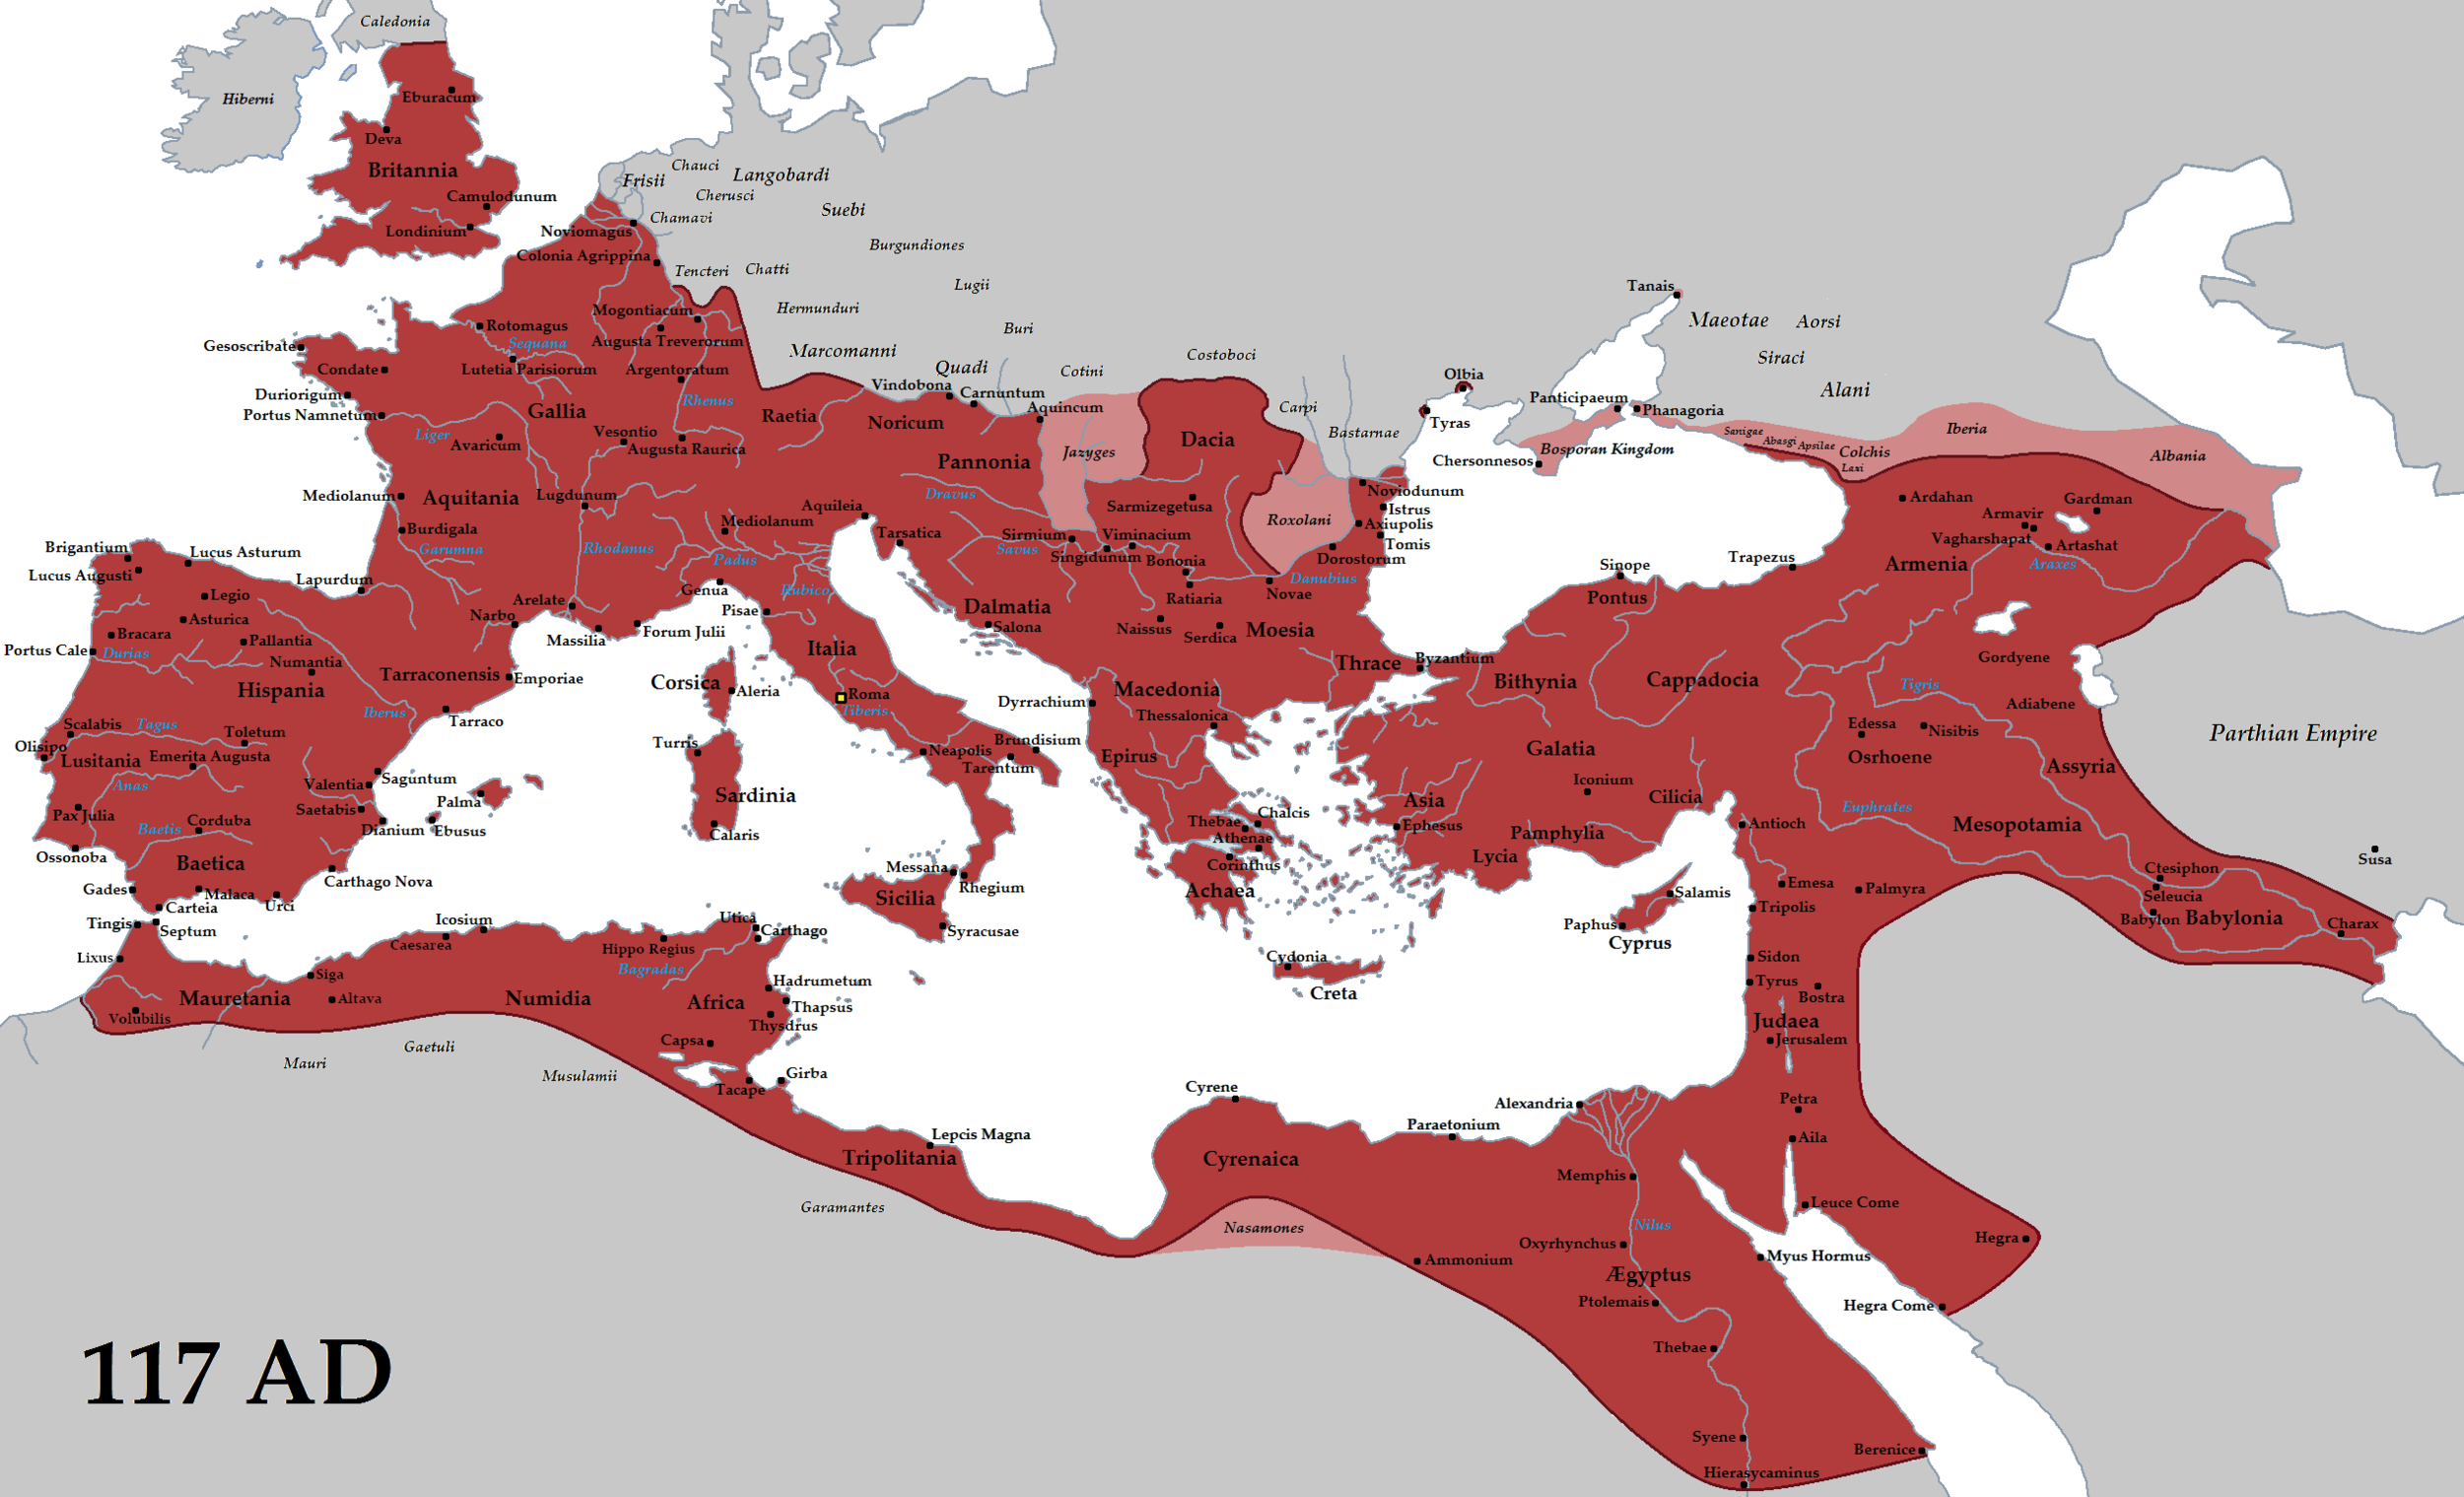 The Roman Empire (red)and its clients (pink), at its greatest extent in 117 AD during the reign of emperor Trajan. (Wikimedia)